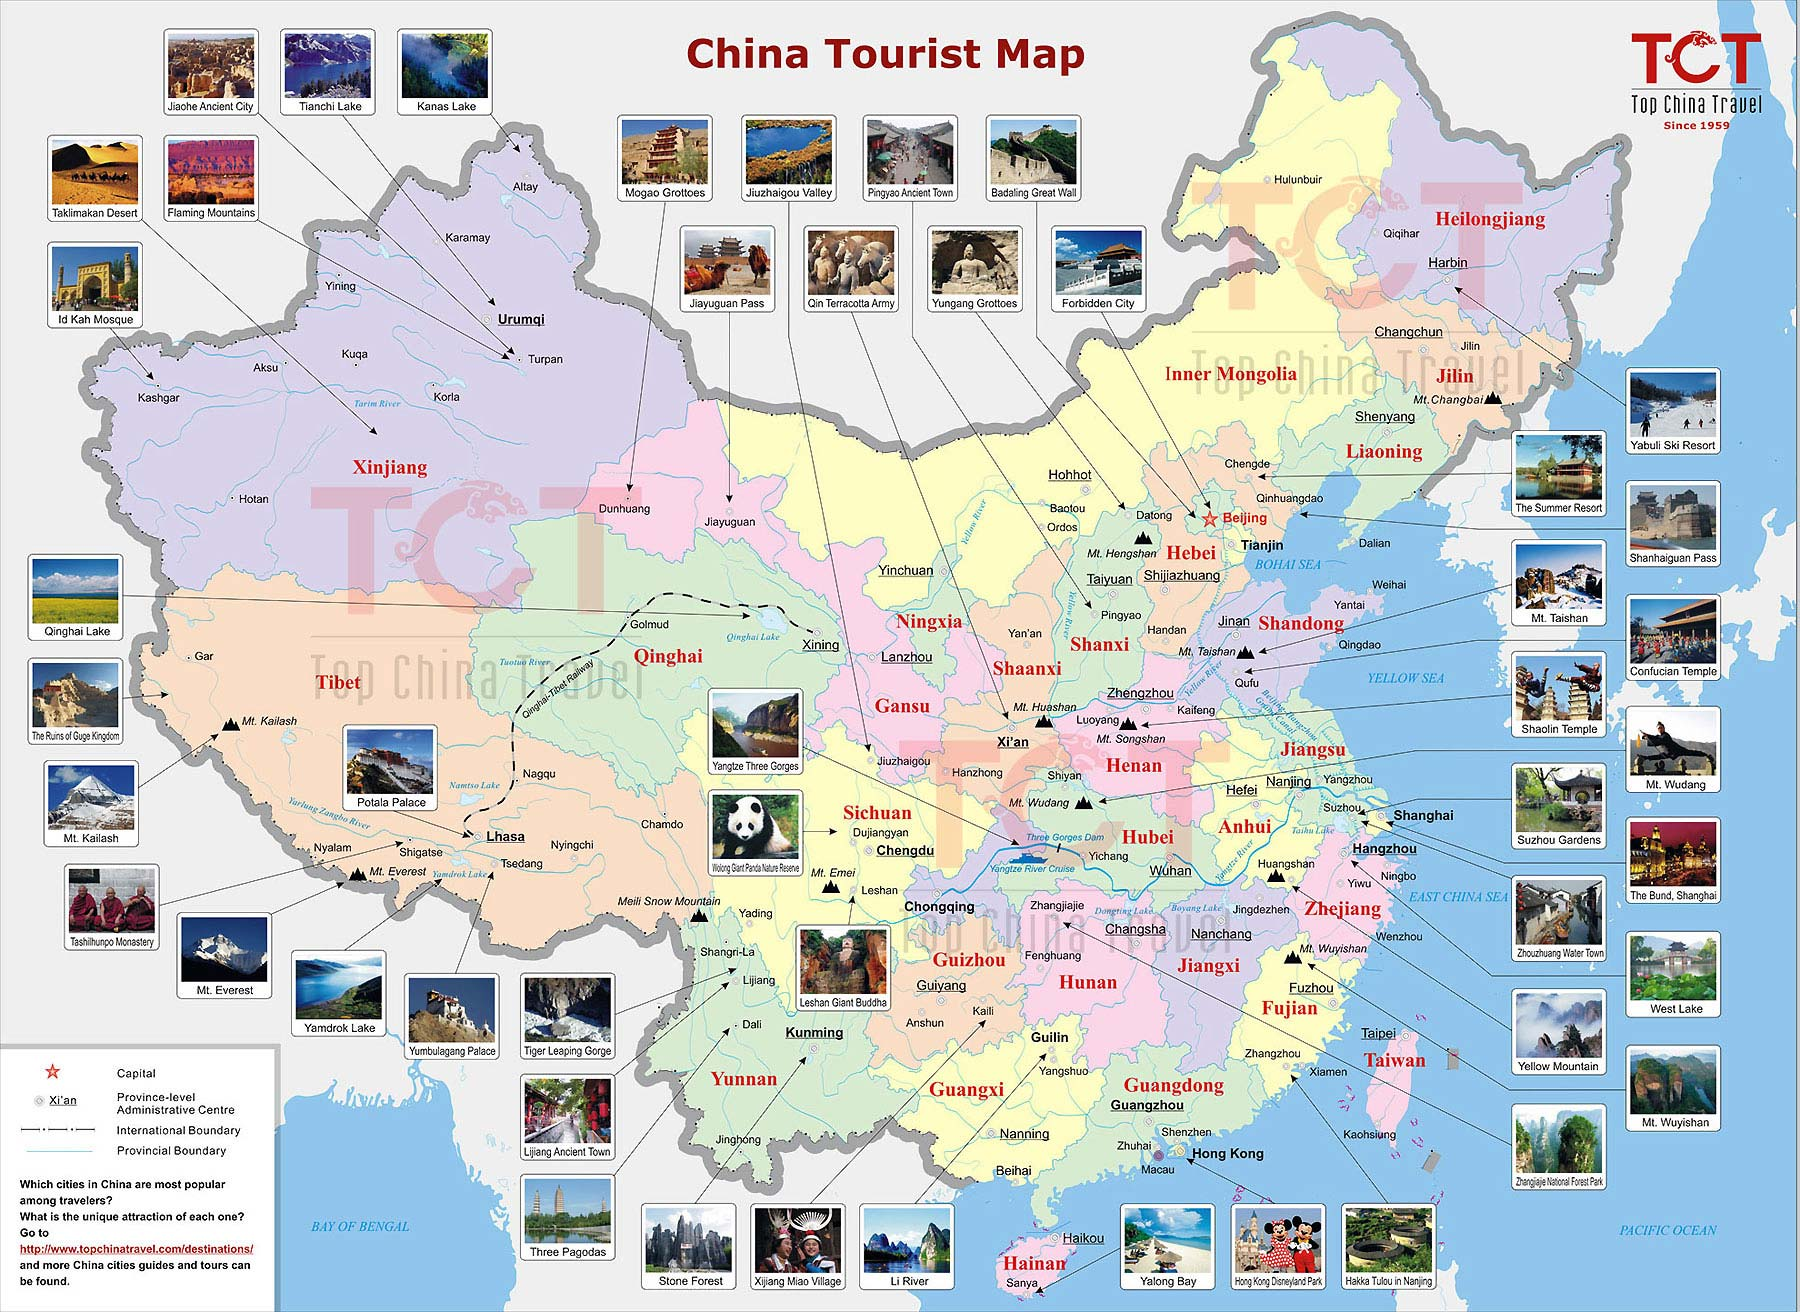 China tourist map tourist map of china china travel map gumiabroncs